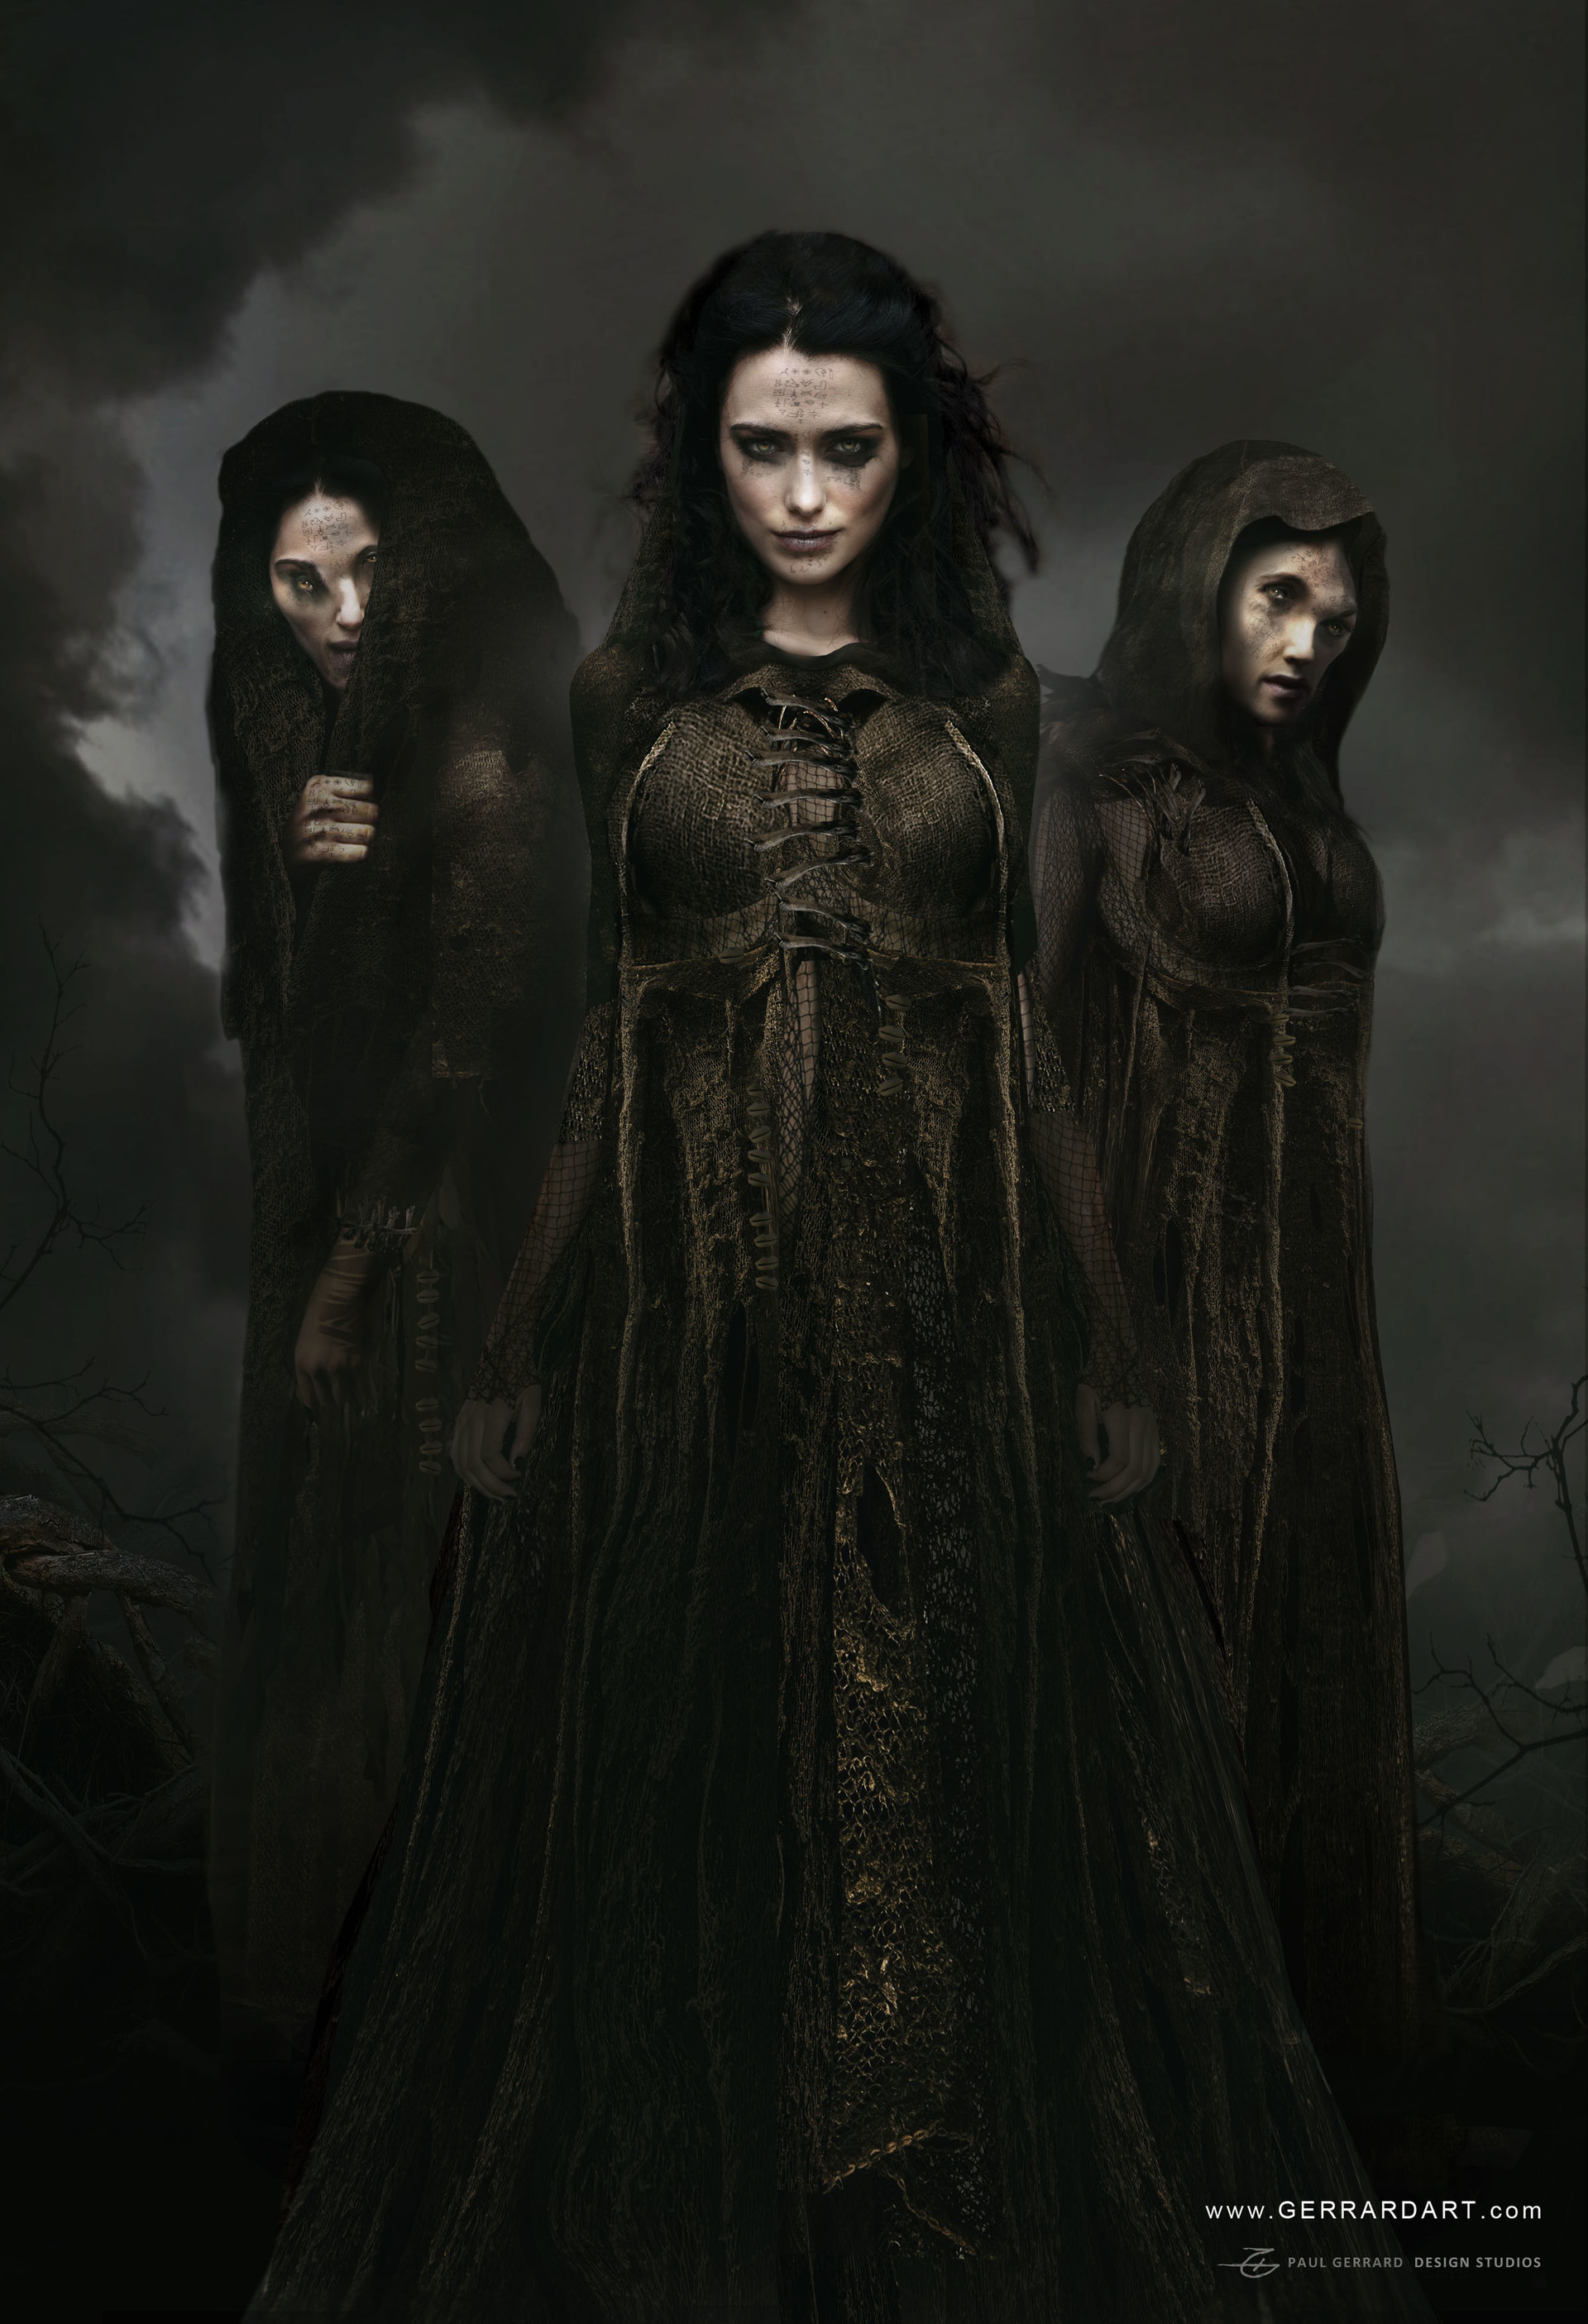 Paul gerrard three witches 08